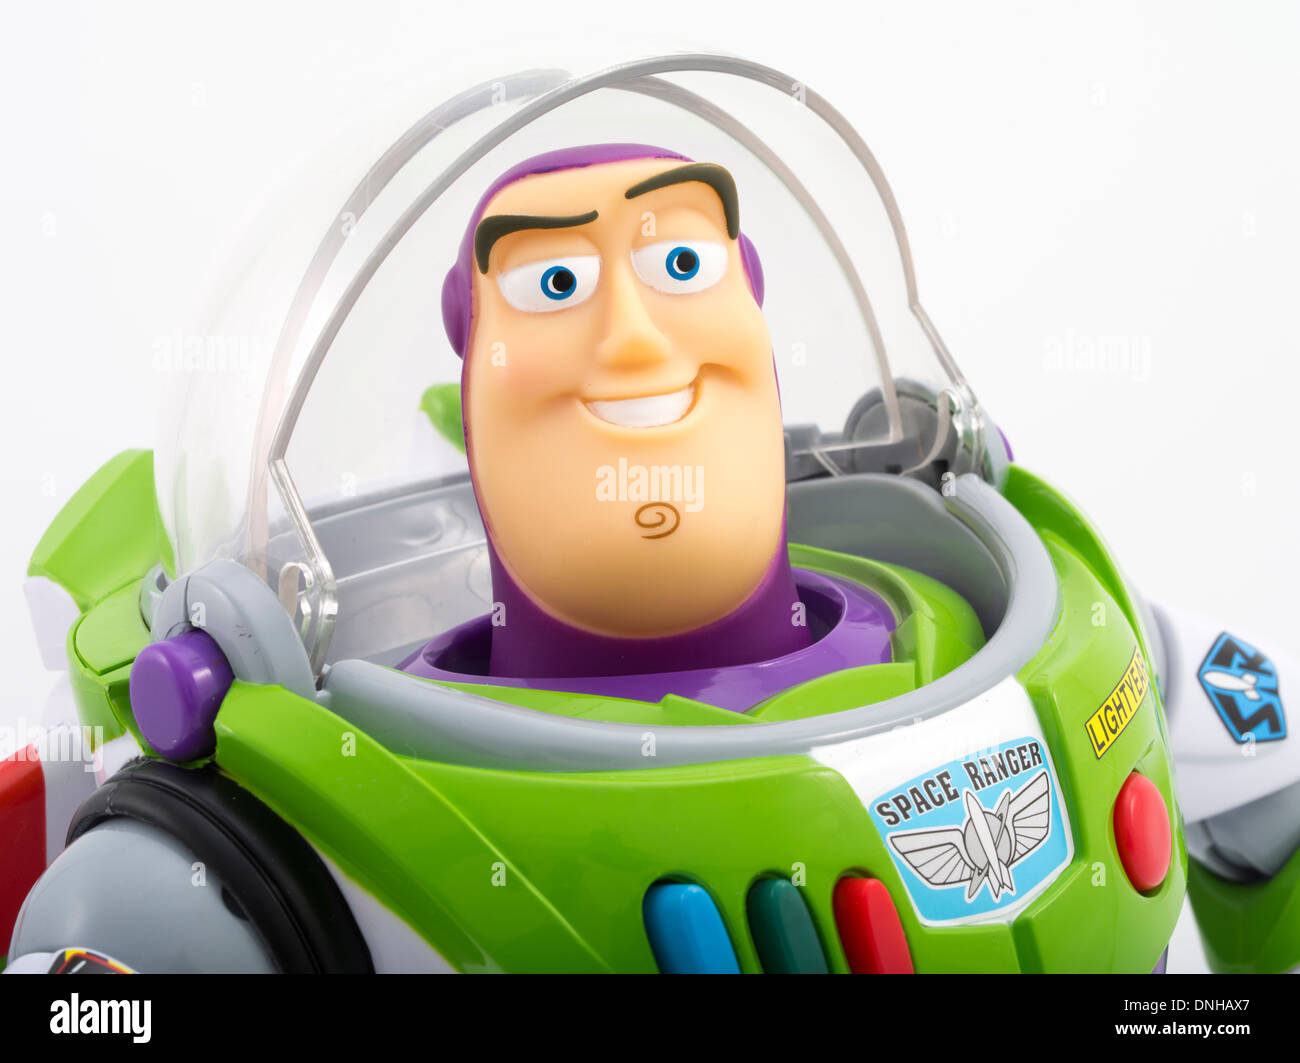 Buzz Lightyear iconic children's toy from movie Toy Story produced by Thinkway Toys - Stock Image